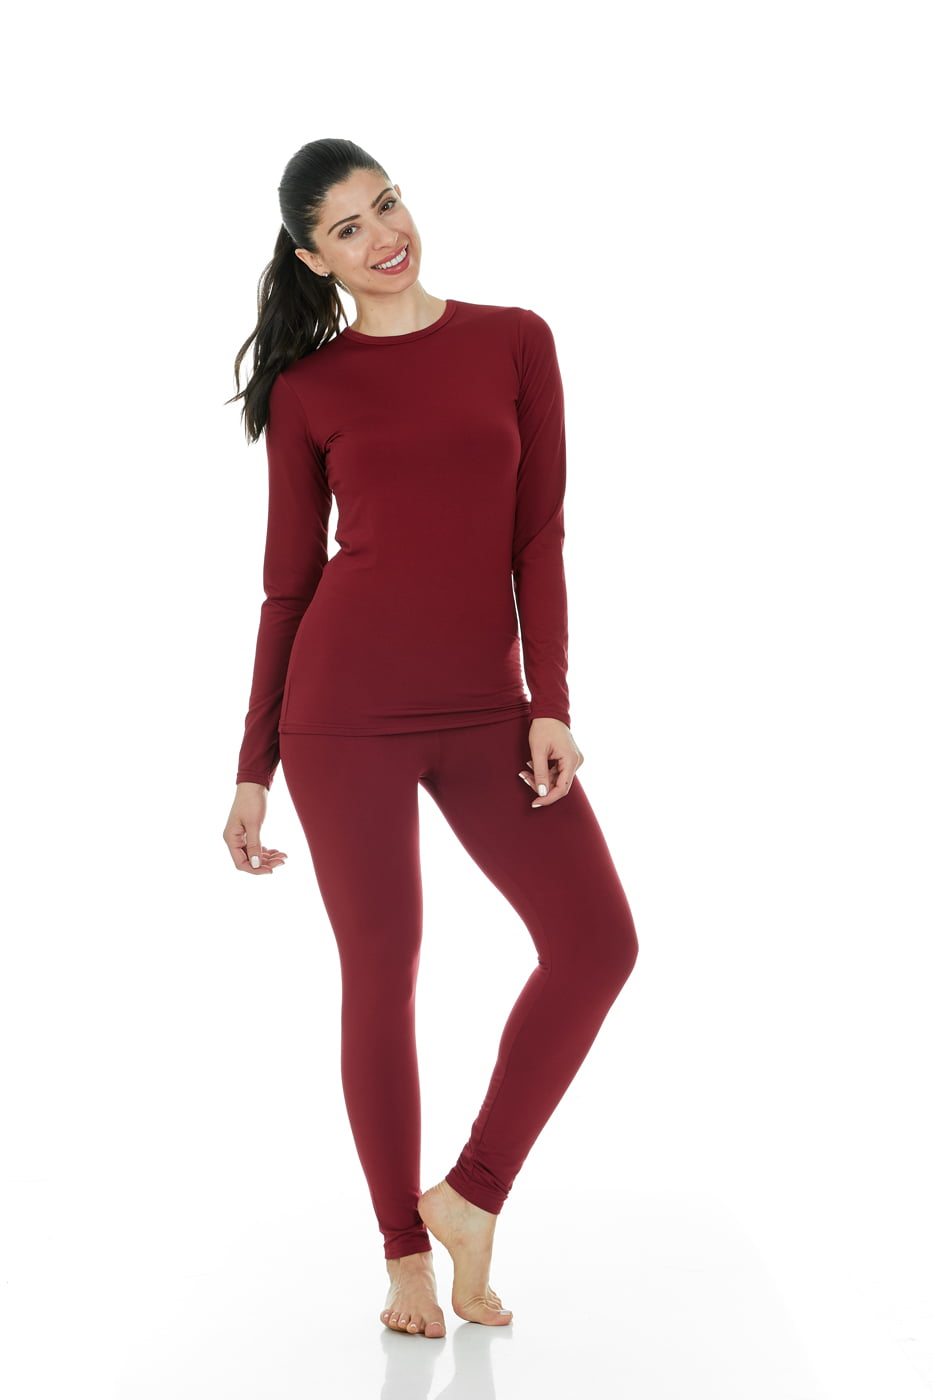 562936f761b8 Thermajane - Thermajane Women's Ultra Soft Thermal Underwear Long Johns Set  With Fleece Lined (X-Small, White) - Walmart.com